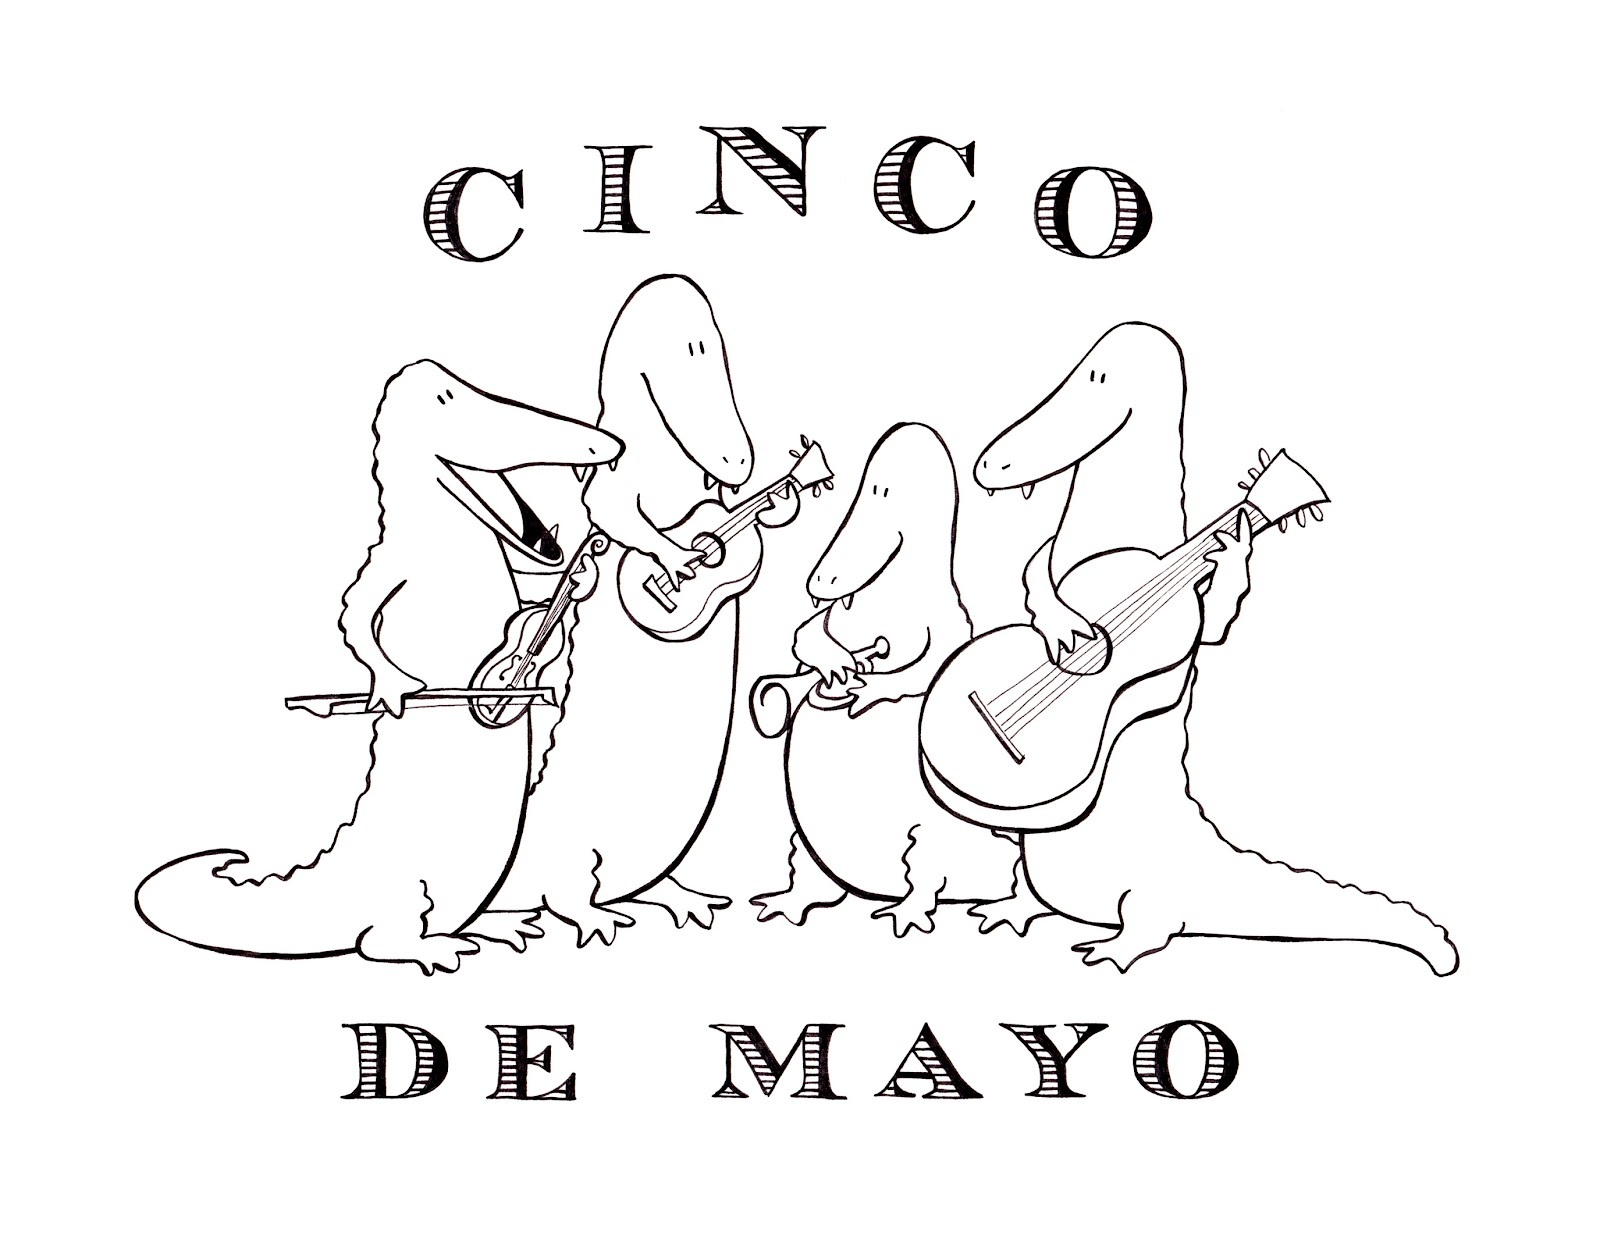 photo relating to Cinco De Mayo Coloring Pages Printable known as Cost-free Printable Cinco De Mayo Coloring Webpages For Little ones - Easiest